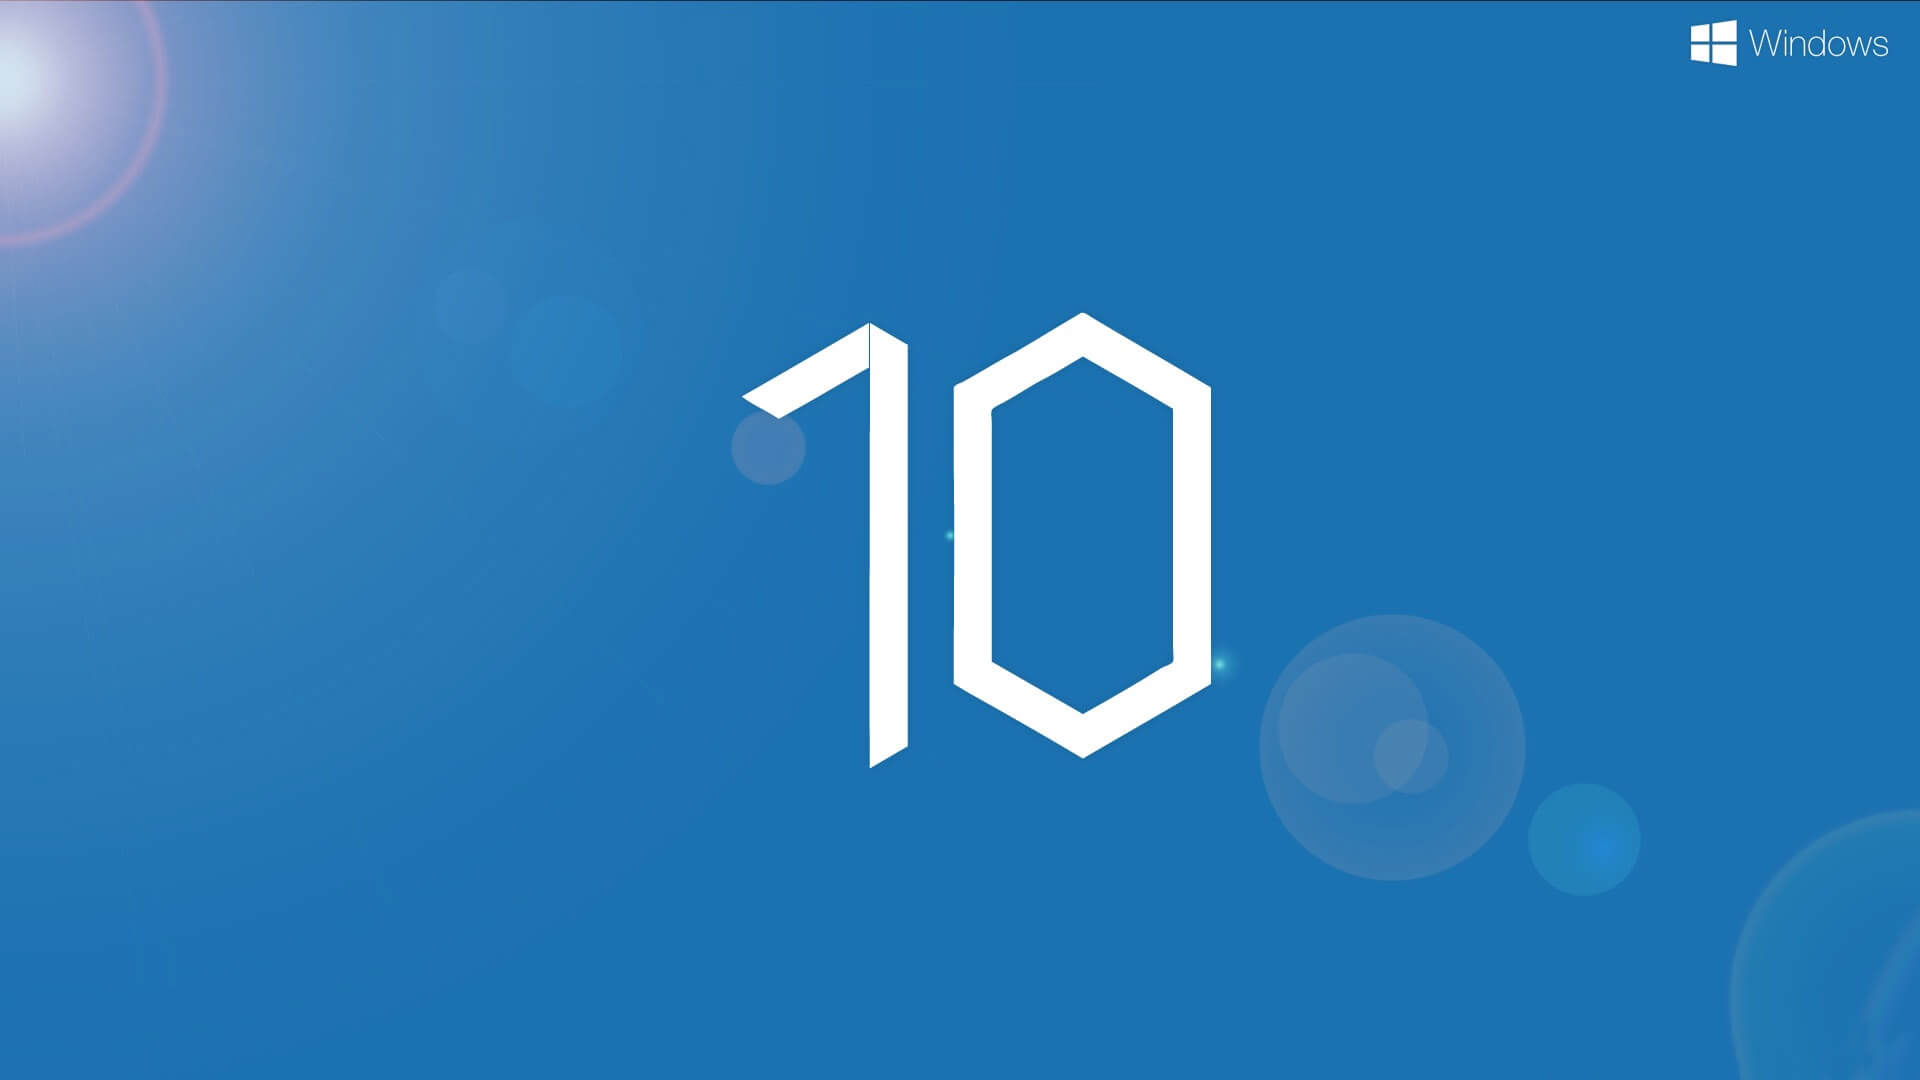 обои windows 10 на рабочий стол